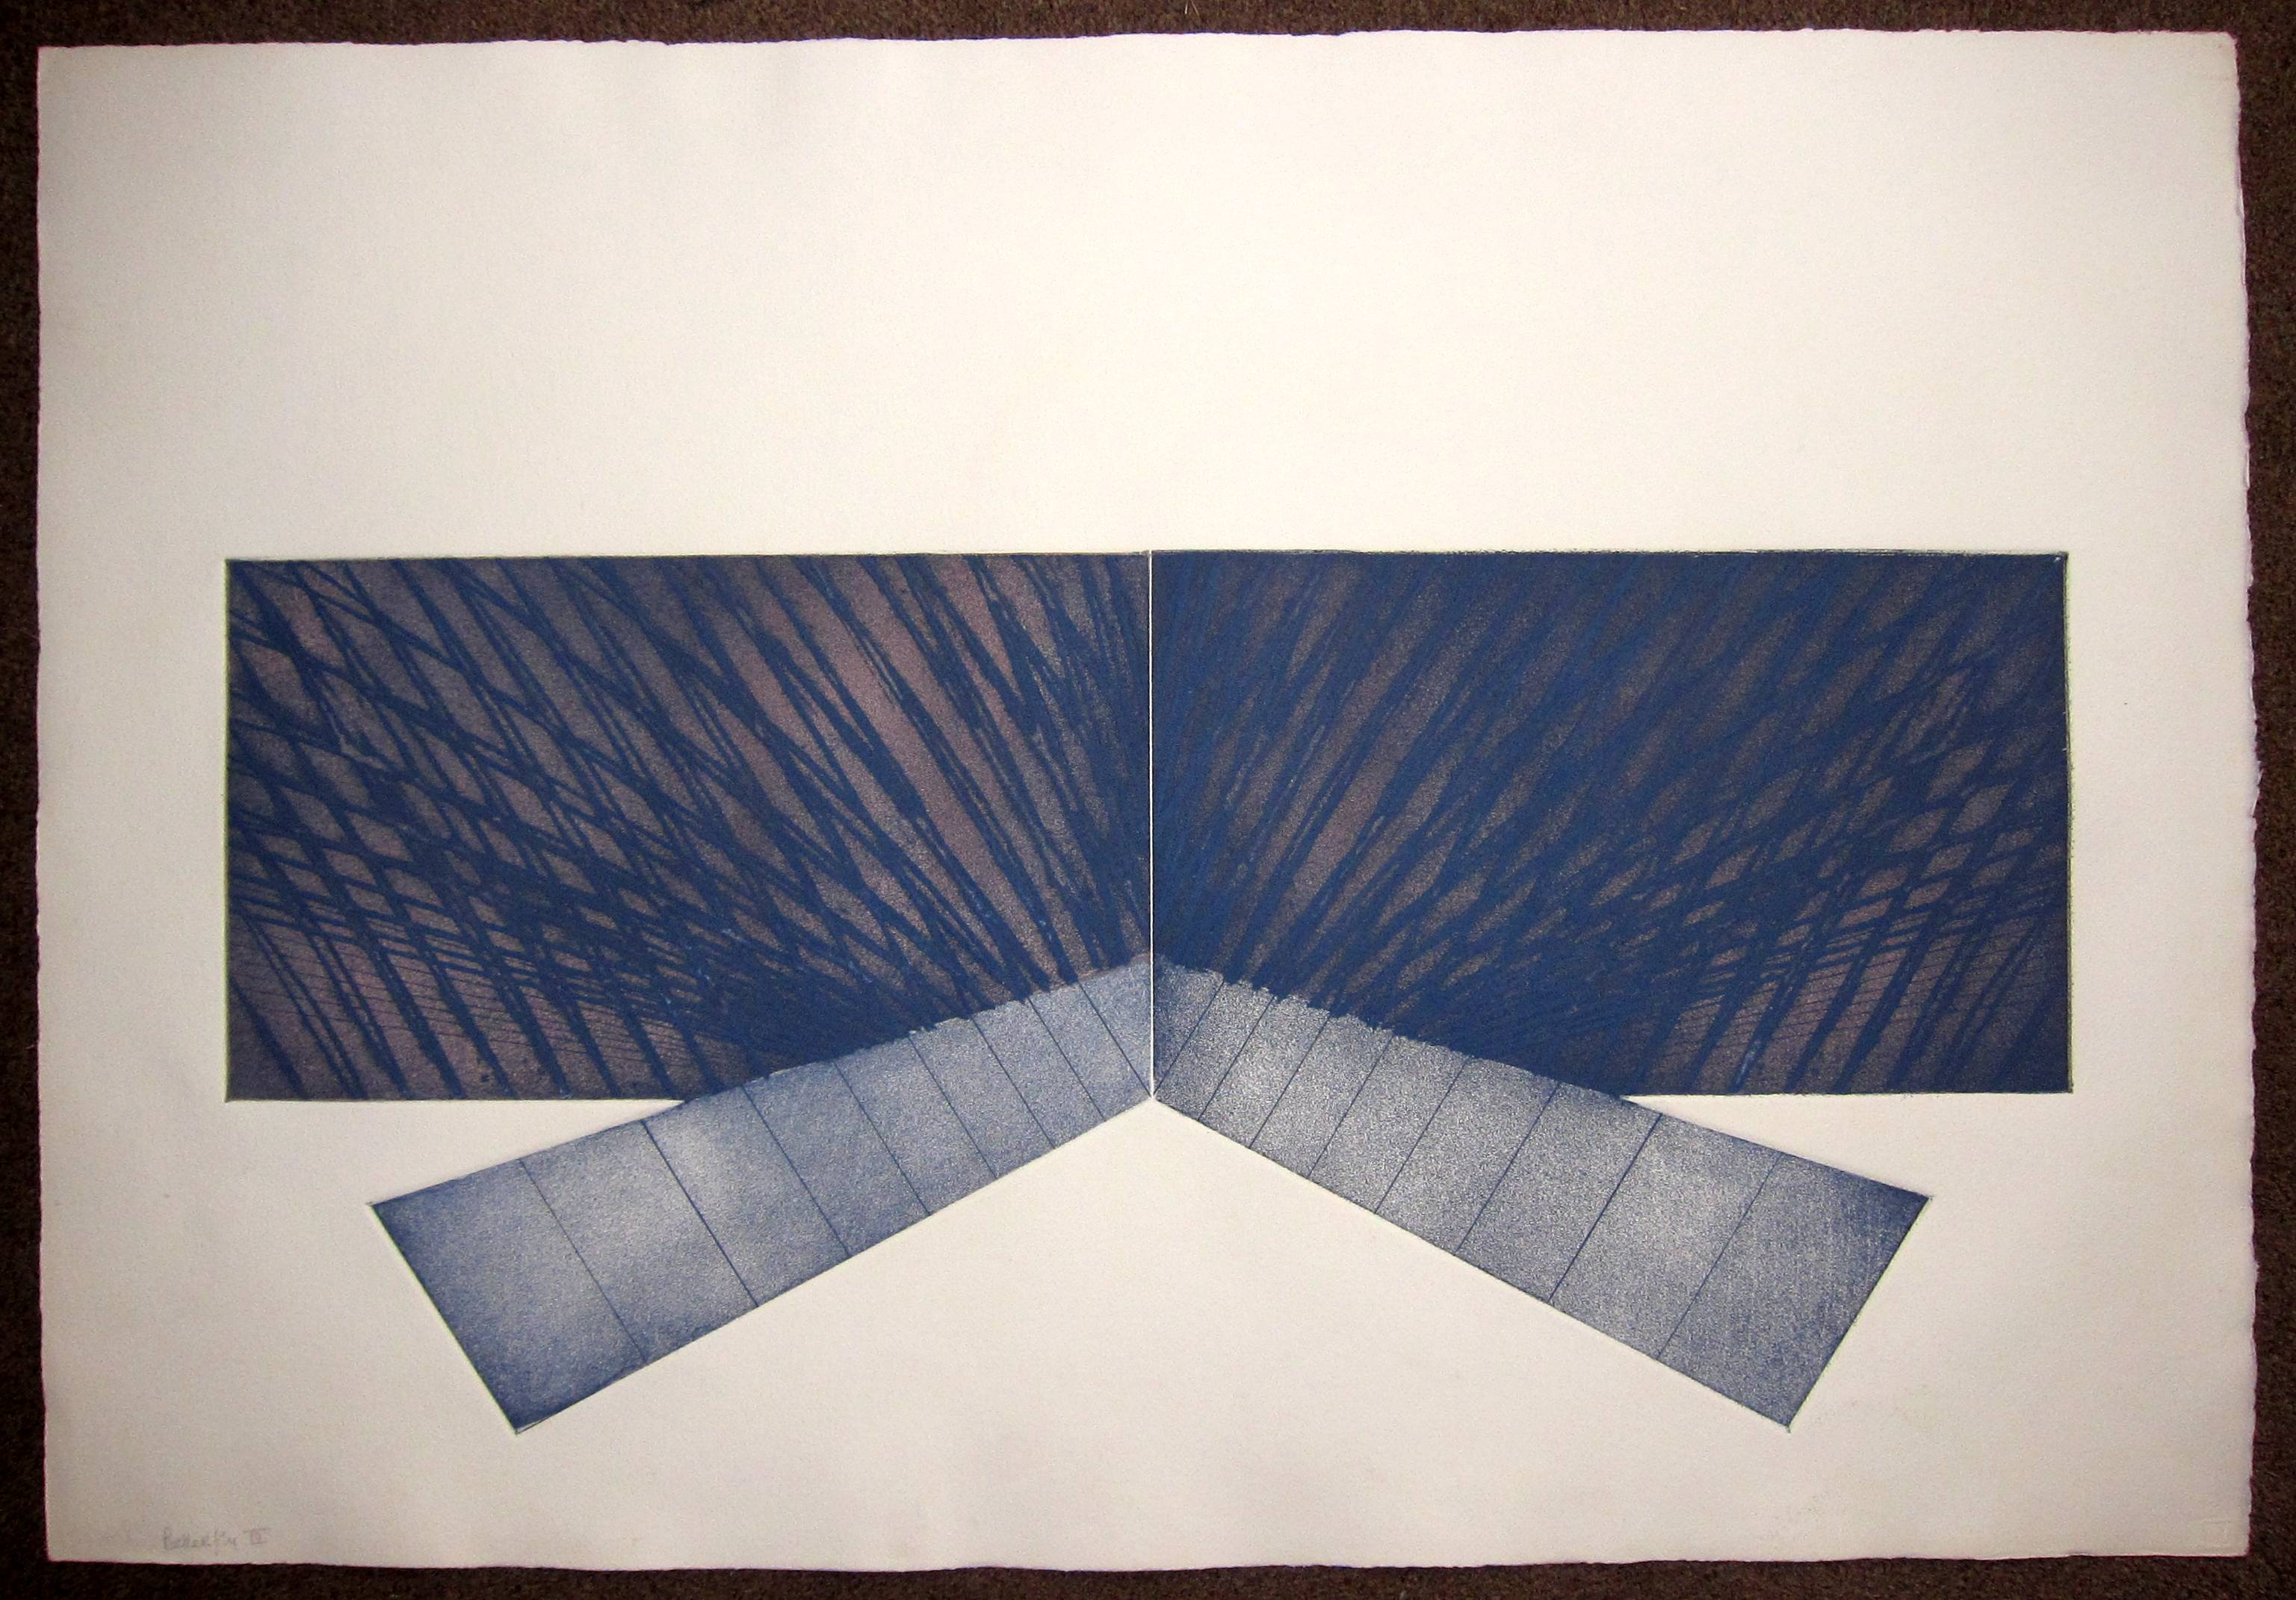 RICHARD SMITH, R.A. [1931-2016]. Butterfly 11, 1971. Etching and aquatint, edition of 40, proof.